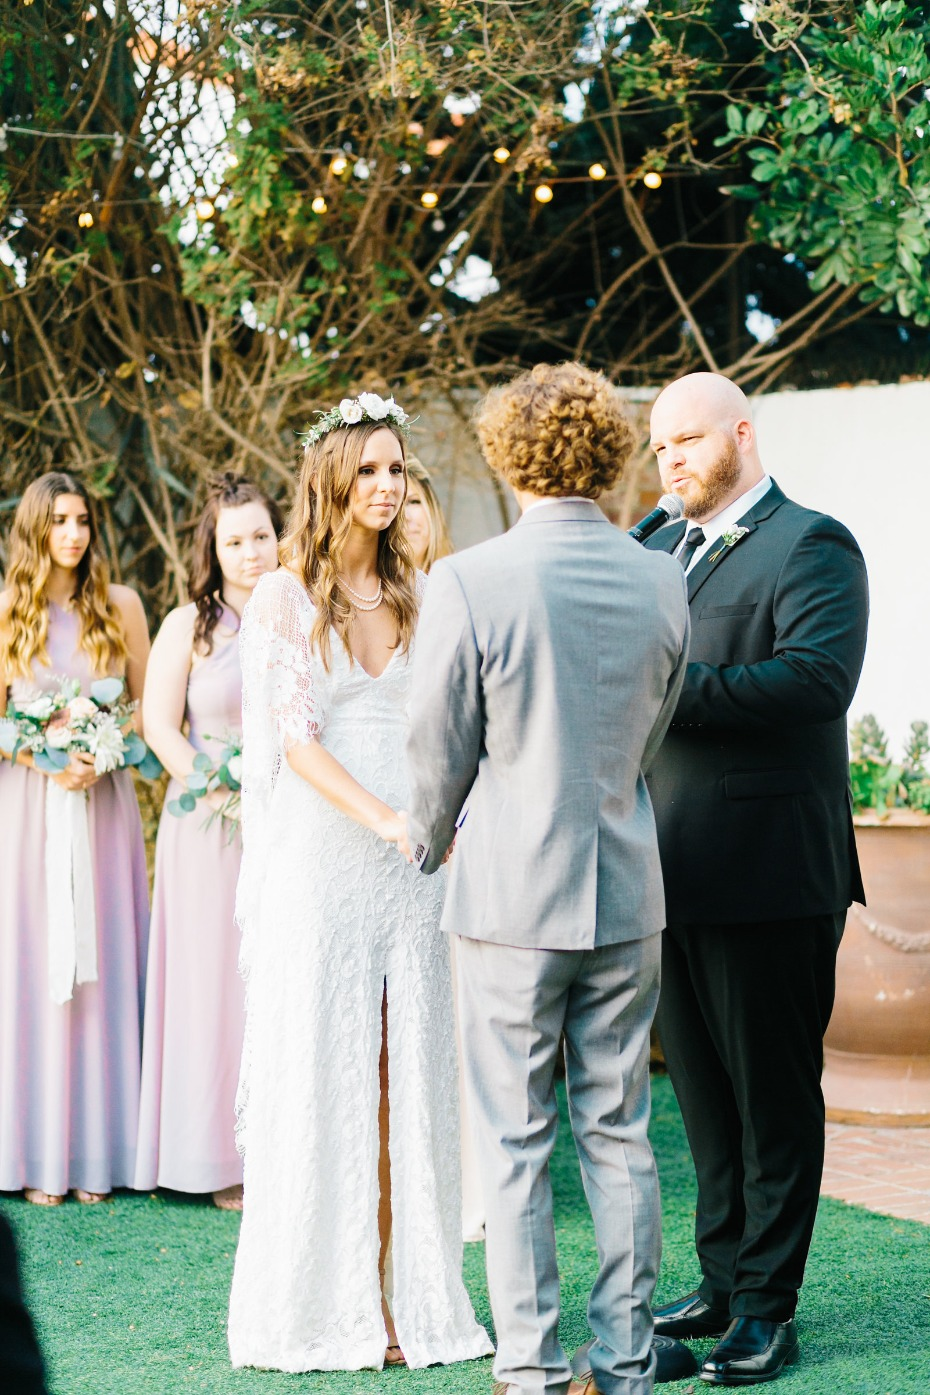 Outdoor ceremony in San Clemente